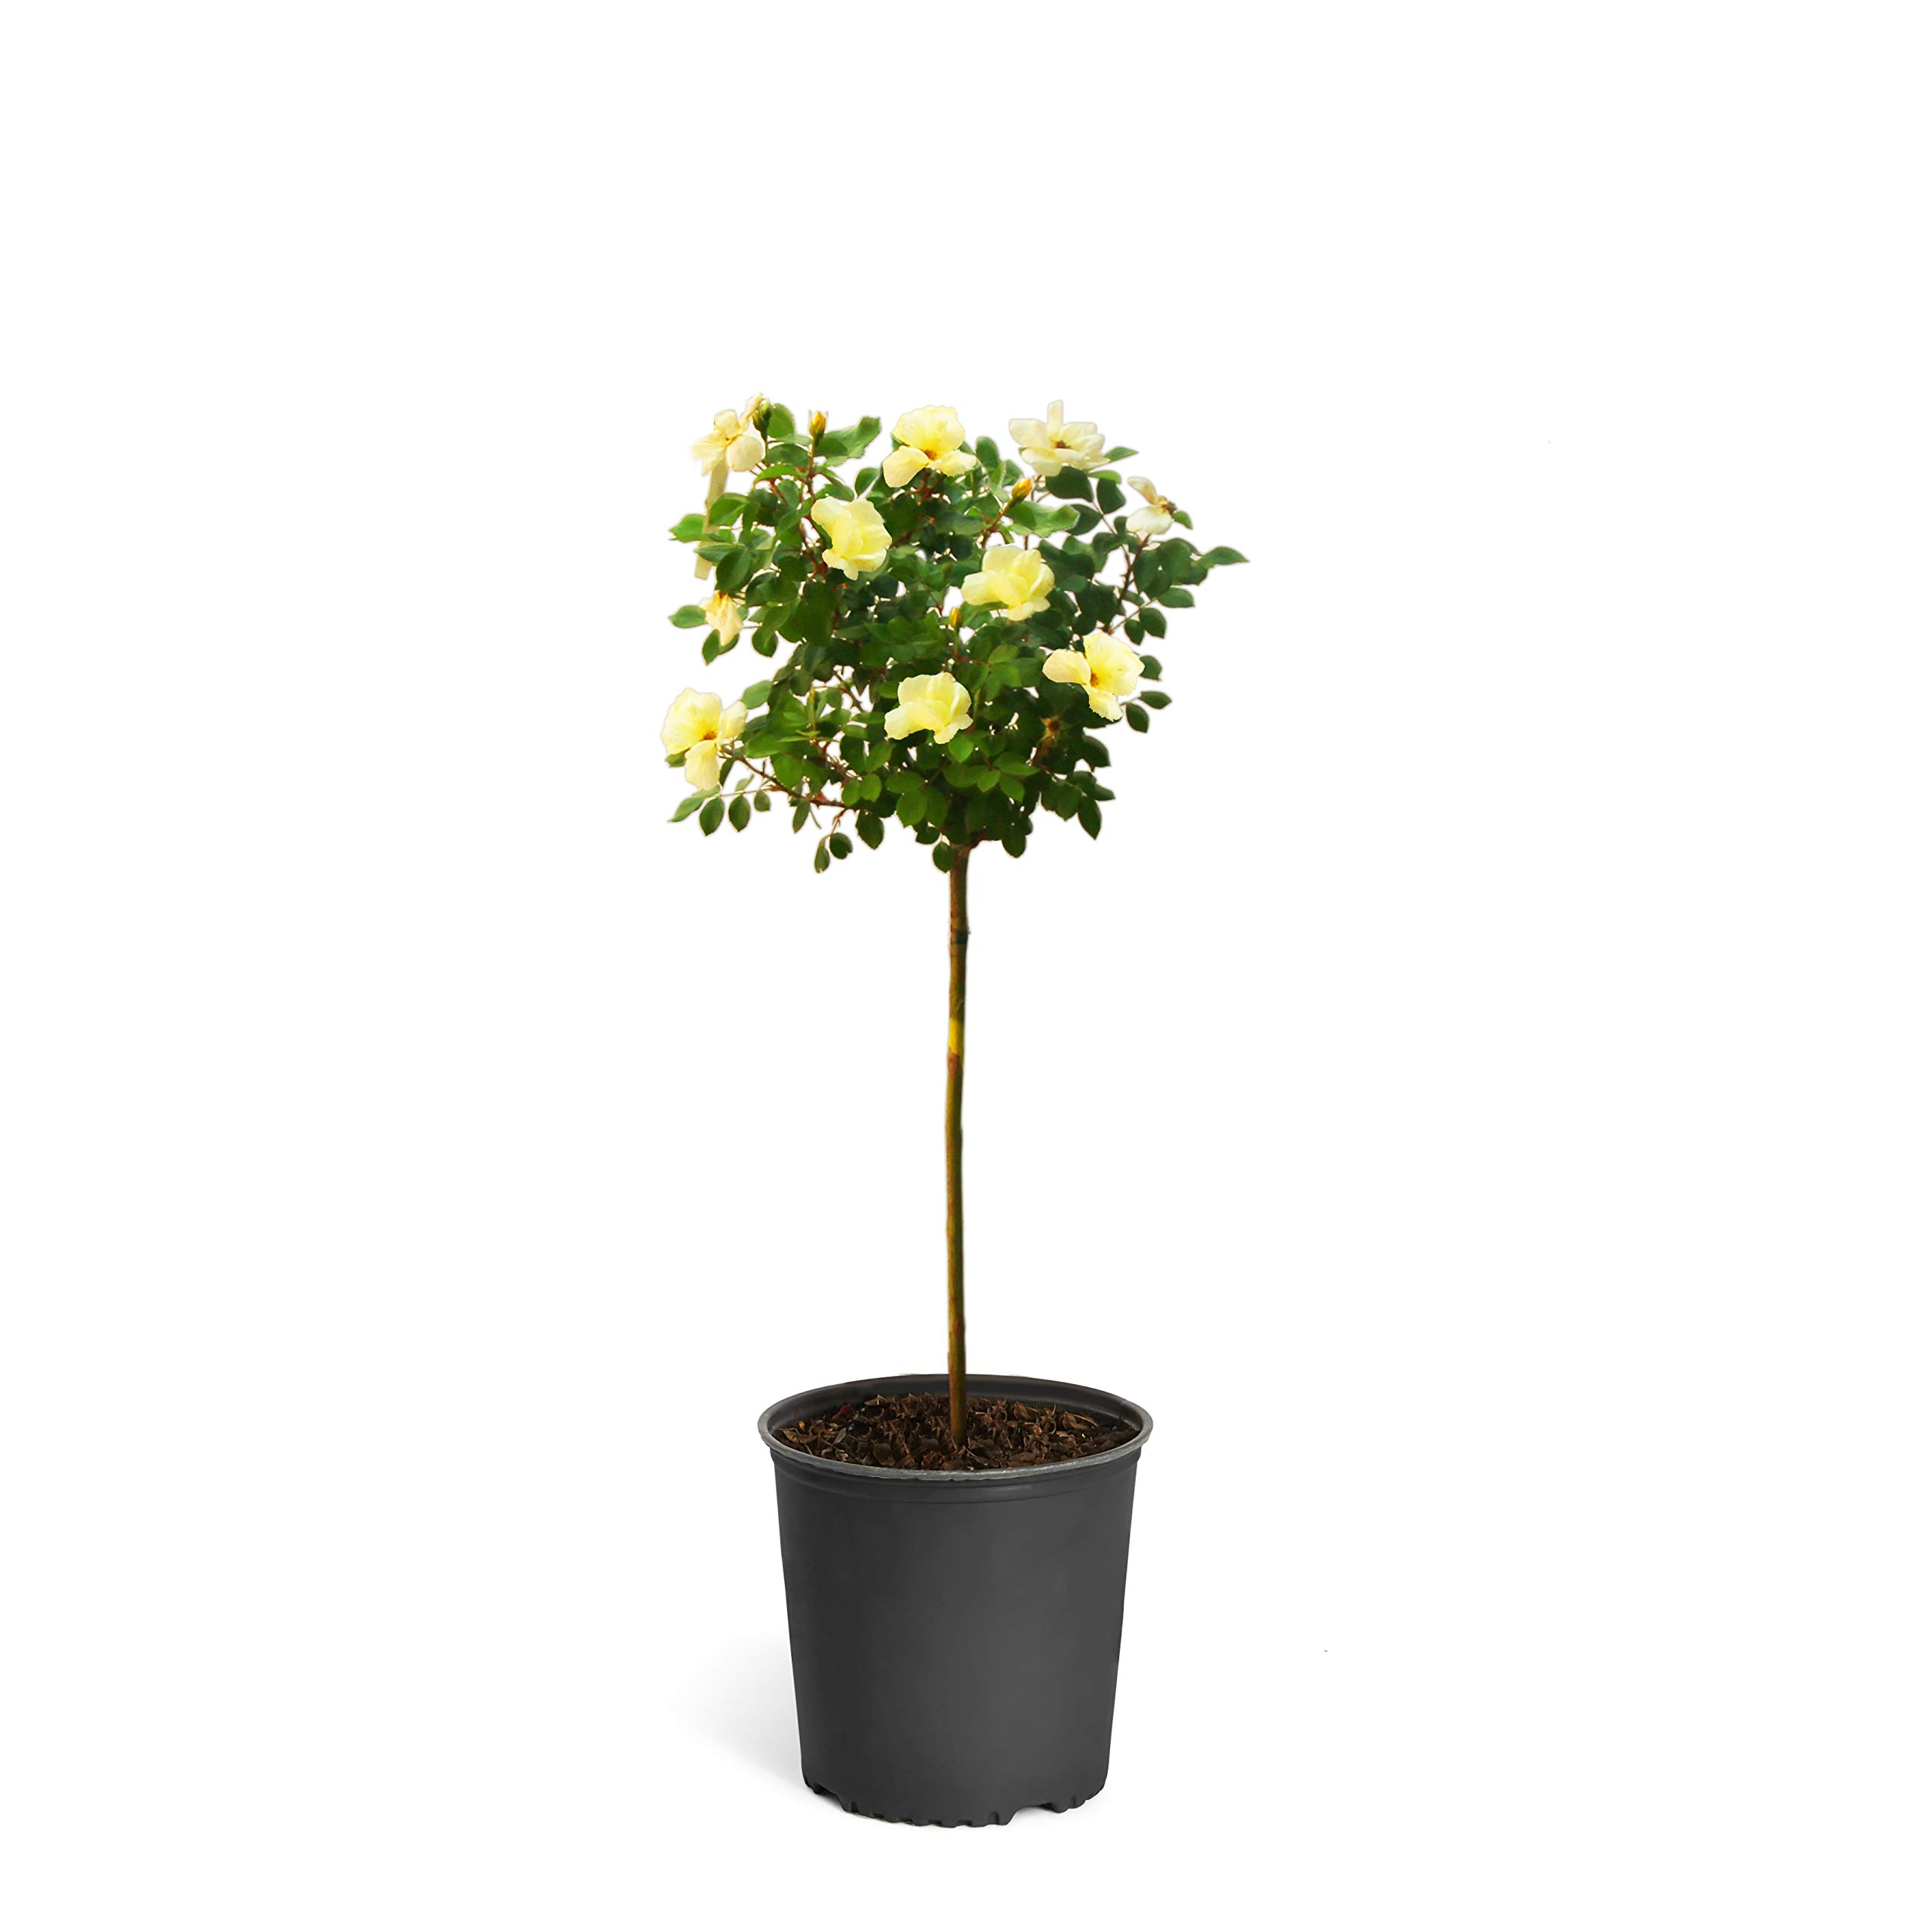 Sunny Knock Out Rose Trees 2-3 feet Tall - Tons of Fragrant Yellow Knock Out Roses on a Patio Rose Tree | Cannot Ship to AZ